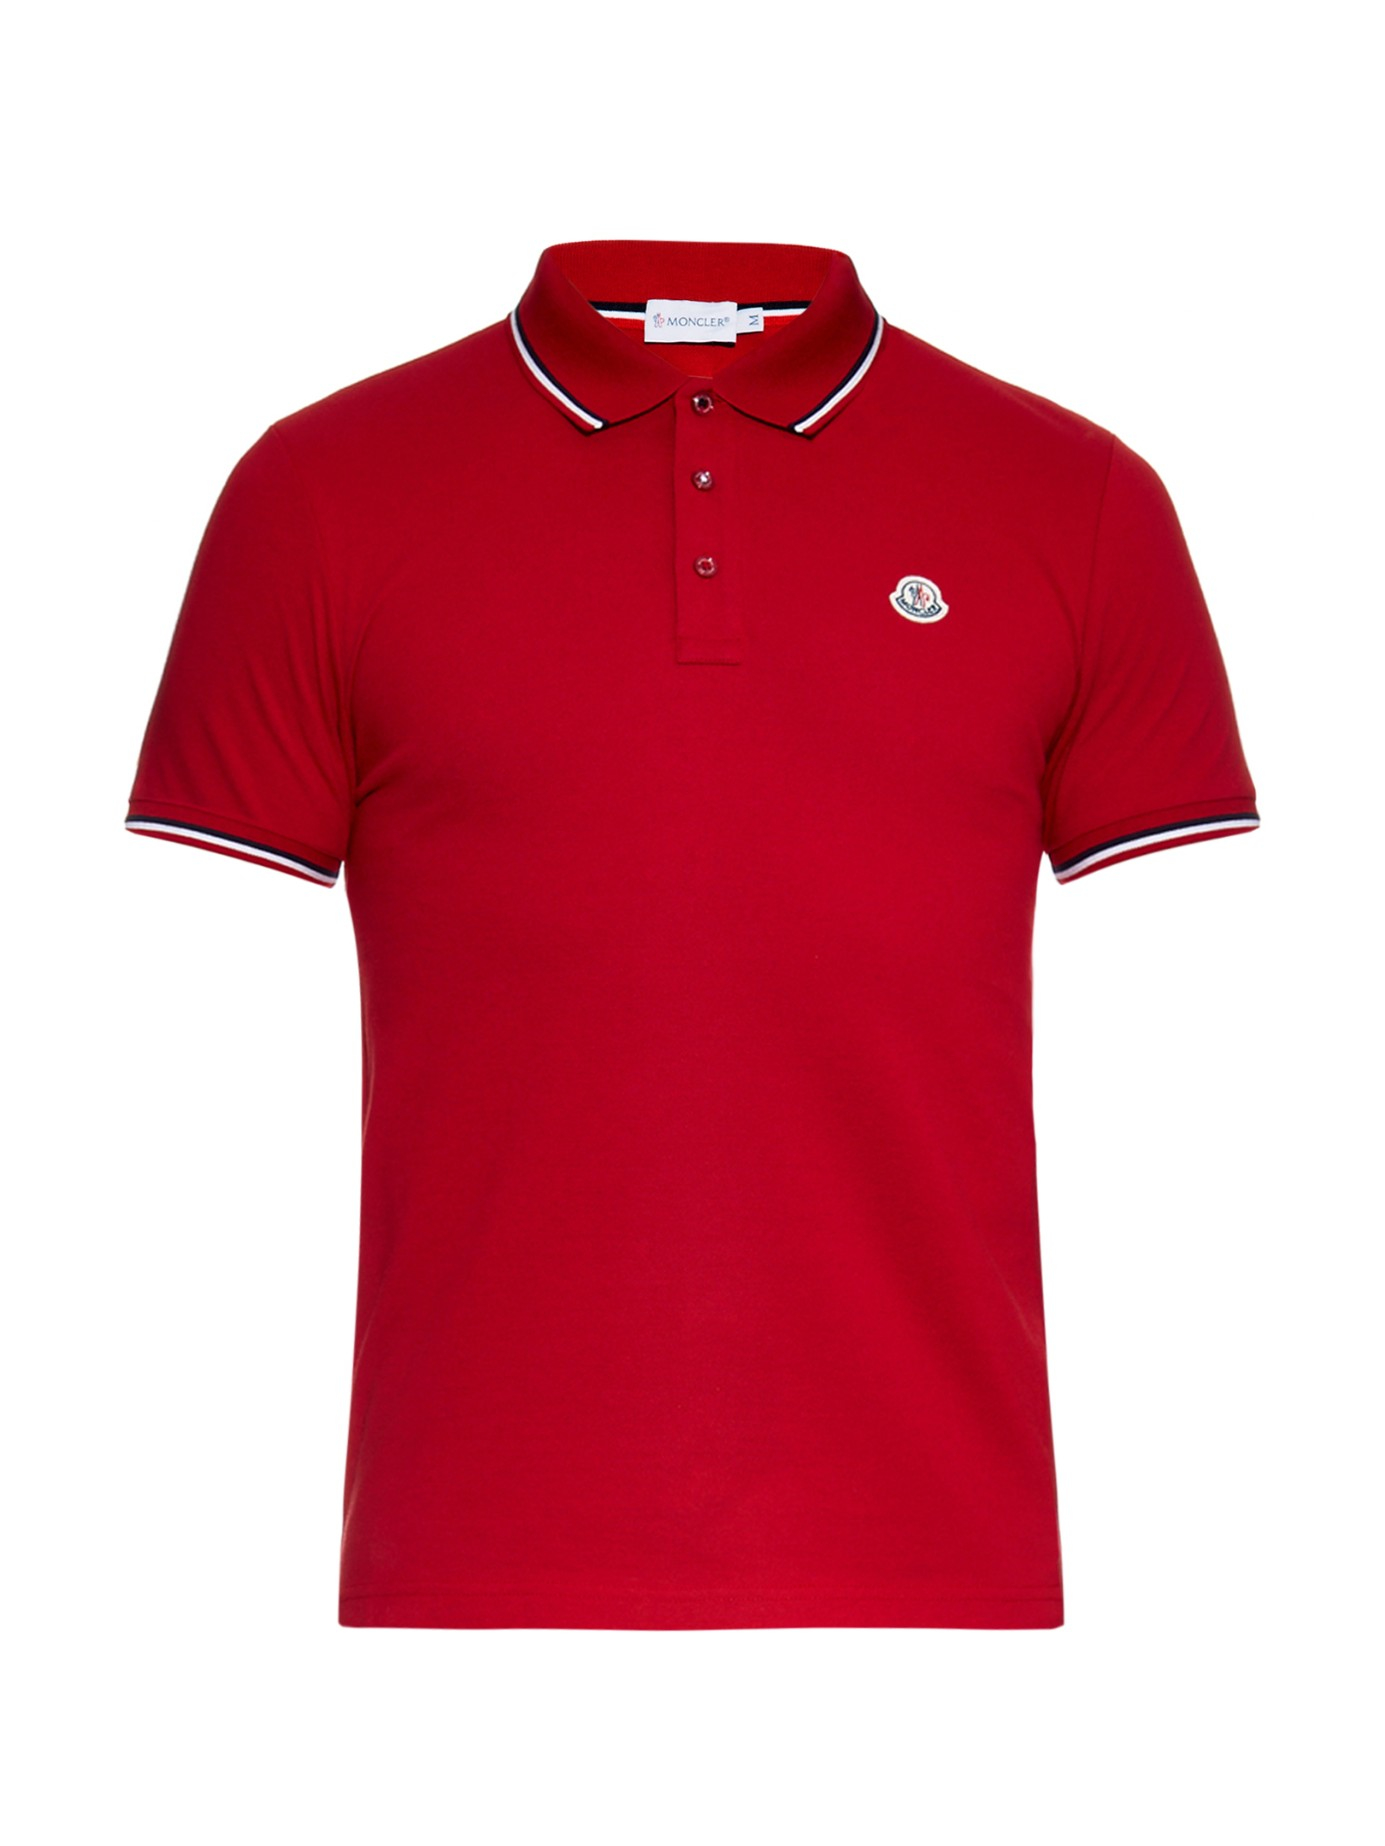 lyst moncler striped trim cotton polo shirt in red for men. Black Bedroom Furniture Sets. Home Design Ideas